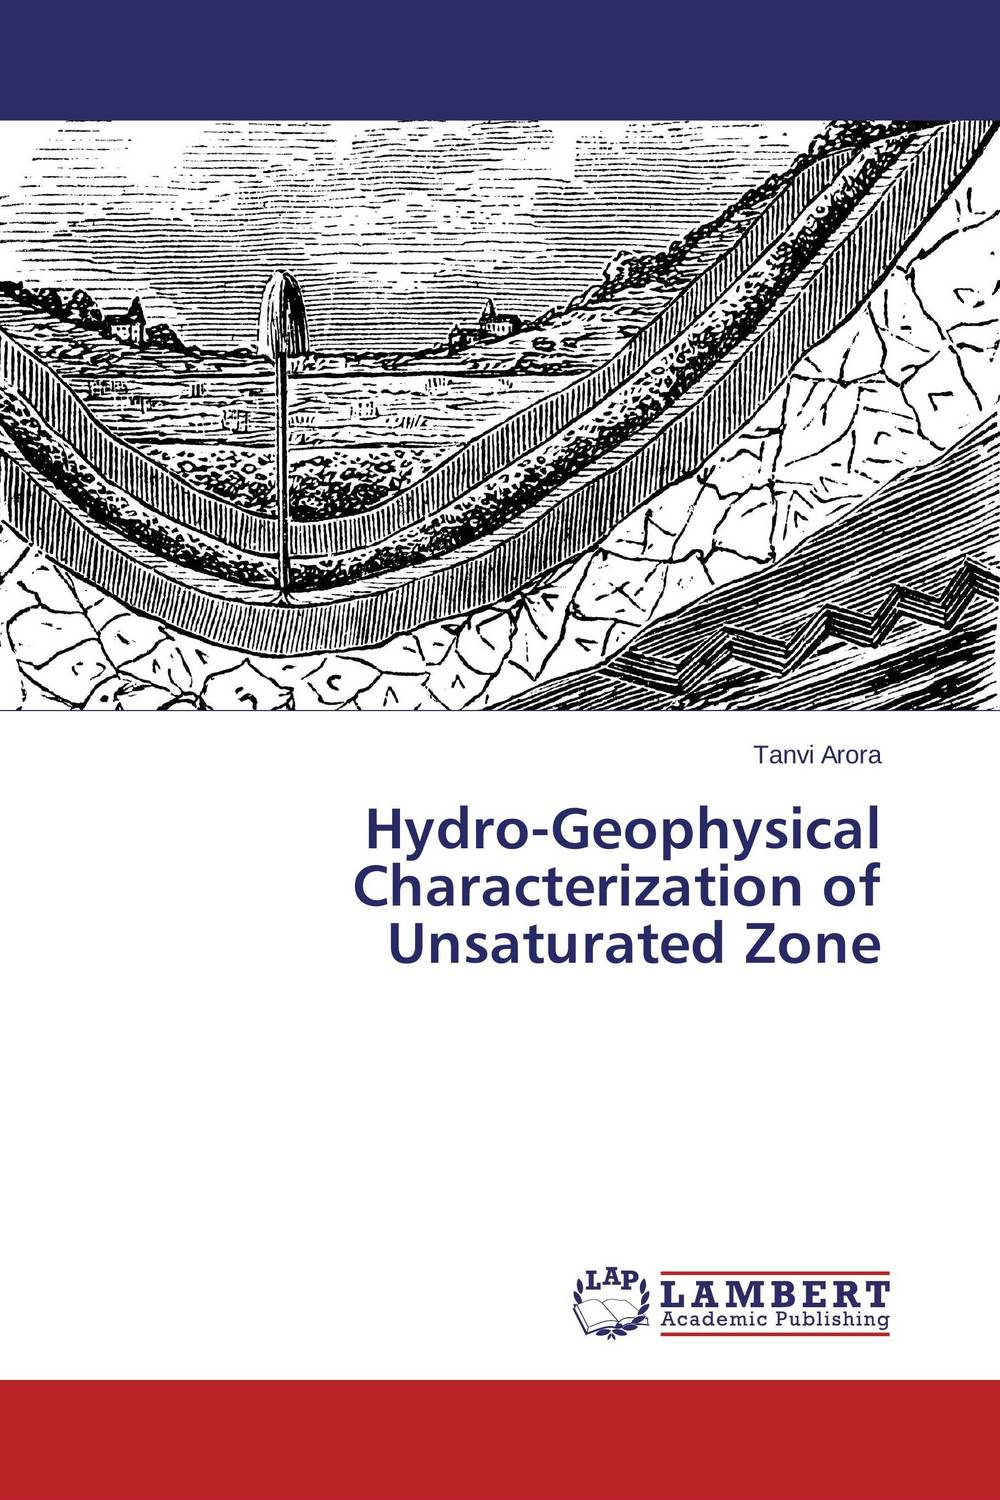 Hydro-Geophysical Characterization of Unsaturated Zone the zone